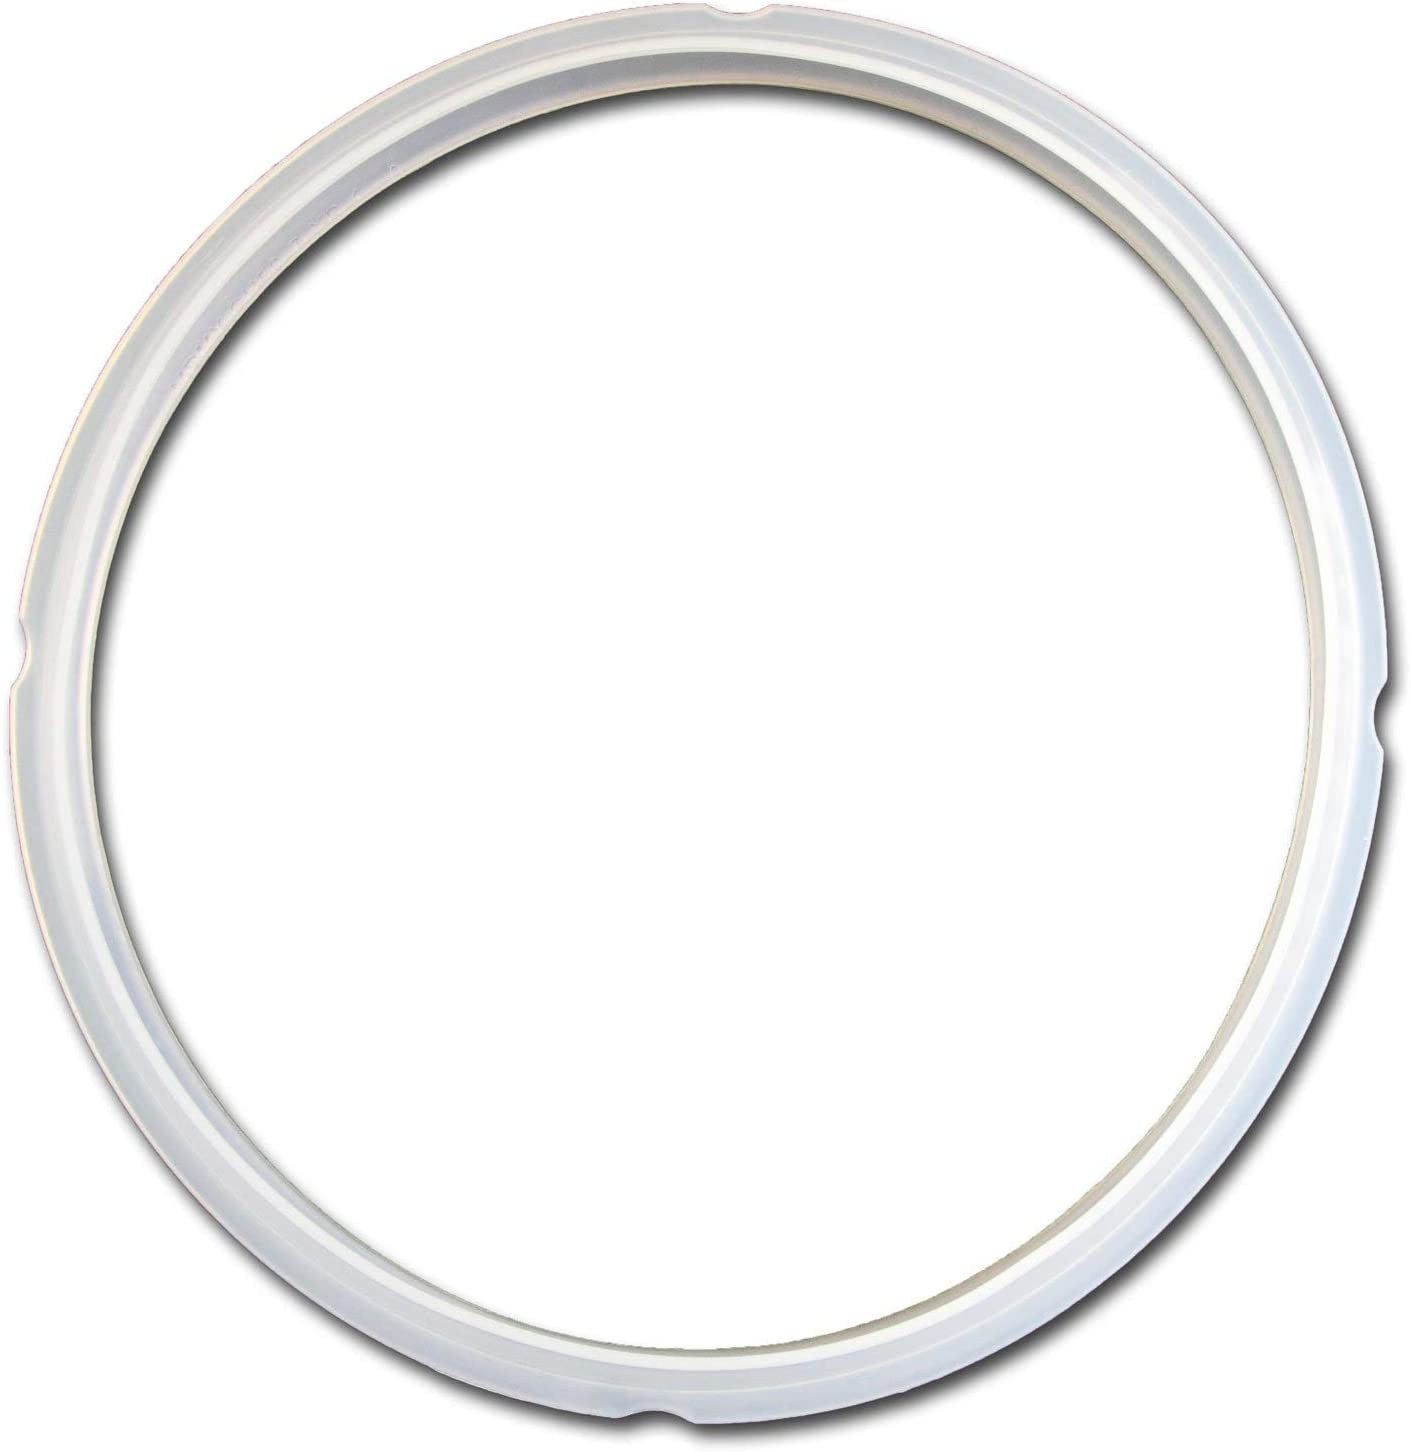 GJS Gourmet Replacement Rubber Seal Ring Compatible with Elite Platinum Electric Pressure Cookers (8 Quart)